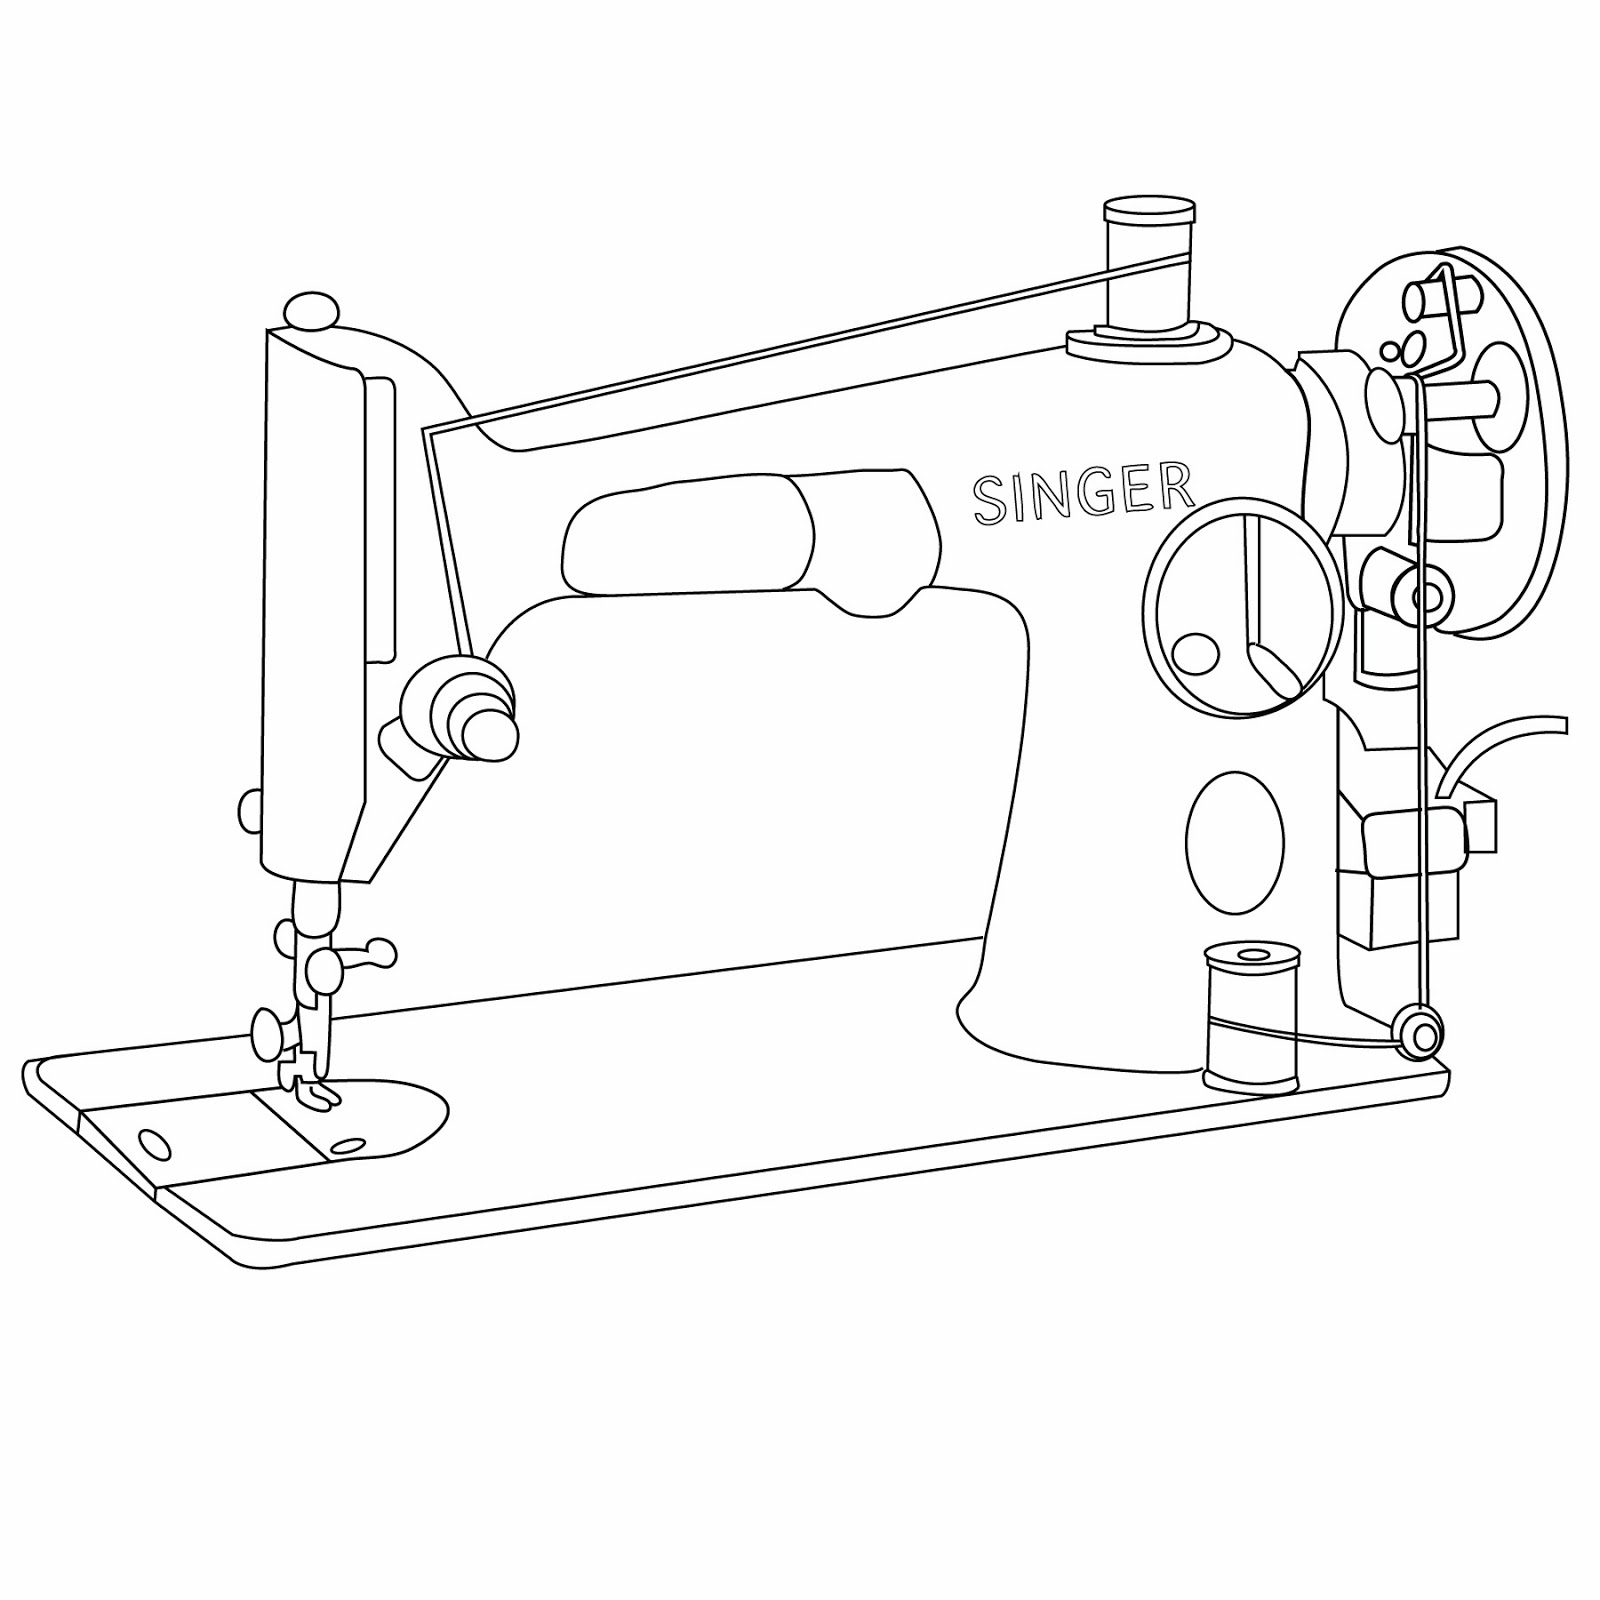 Vintage Sewing Machine Drawing At Free For Singer Diagram 1600x1600 Wwwimgarcade Online Image